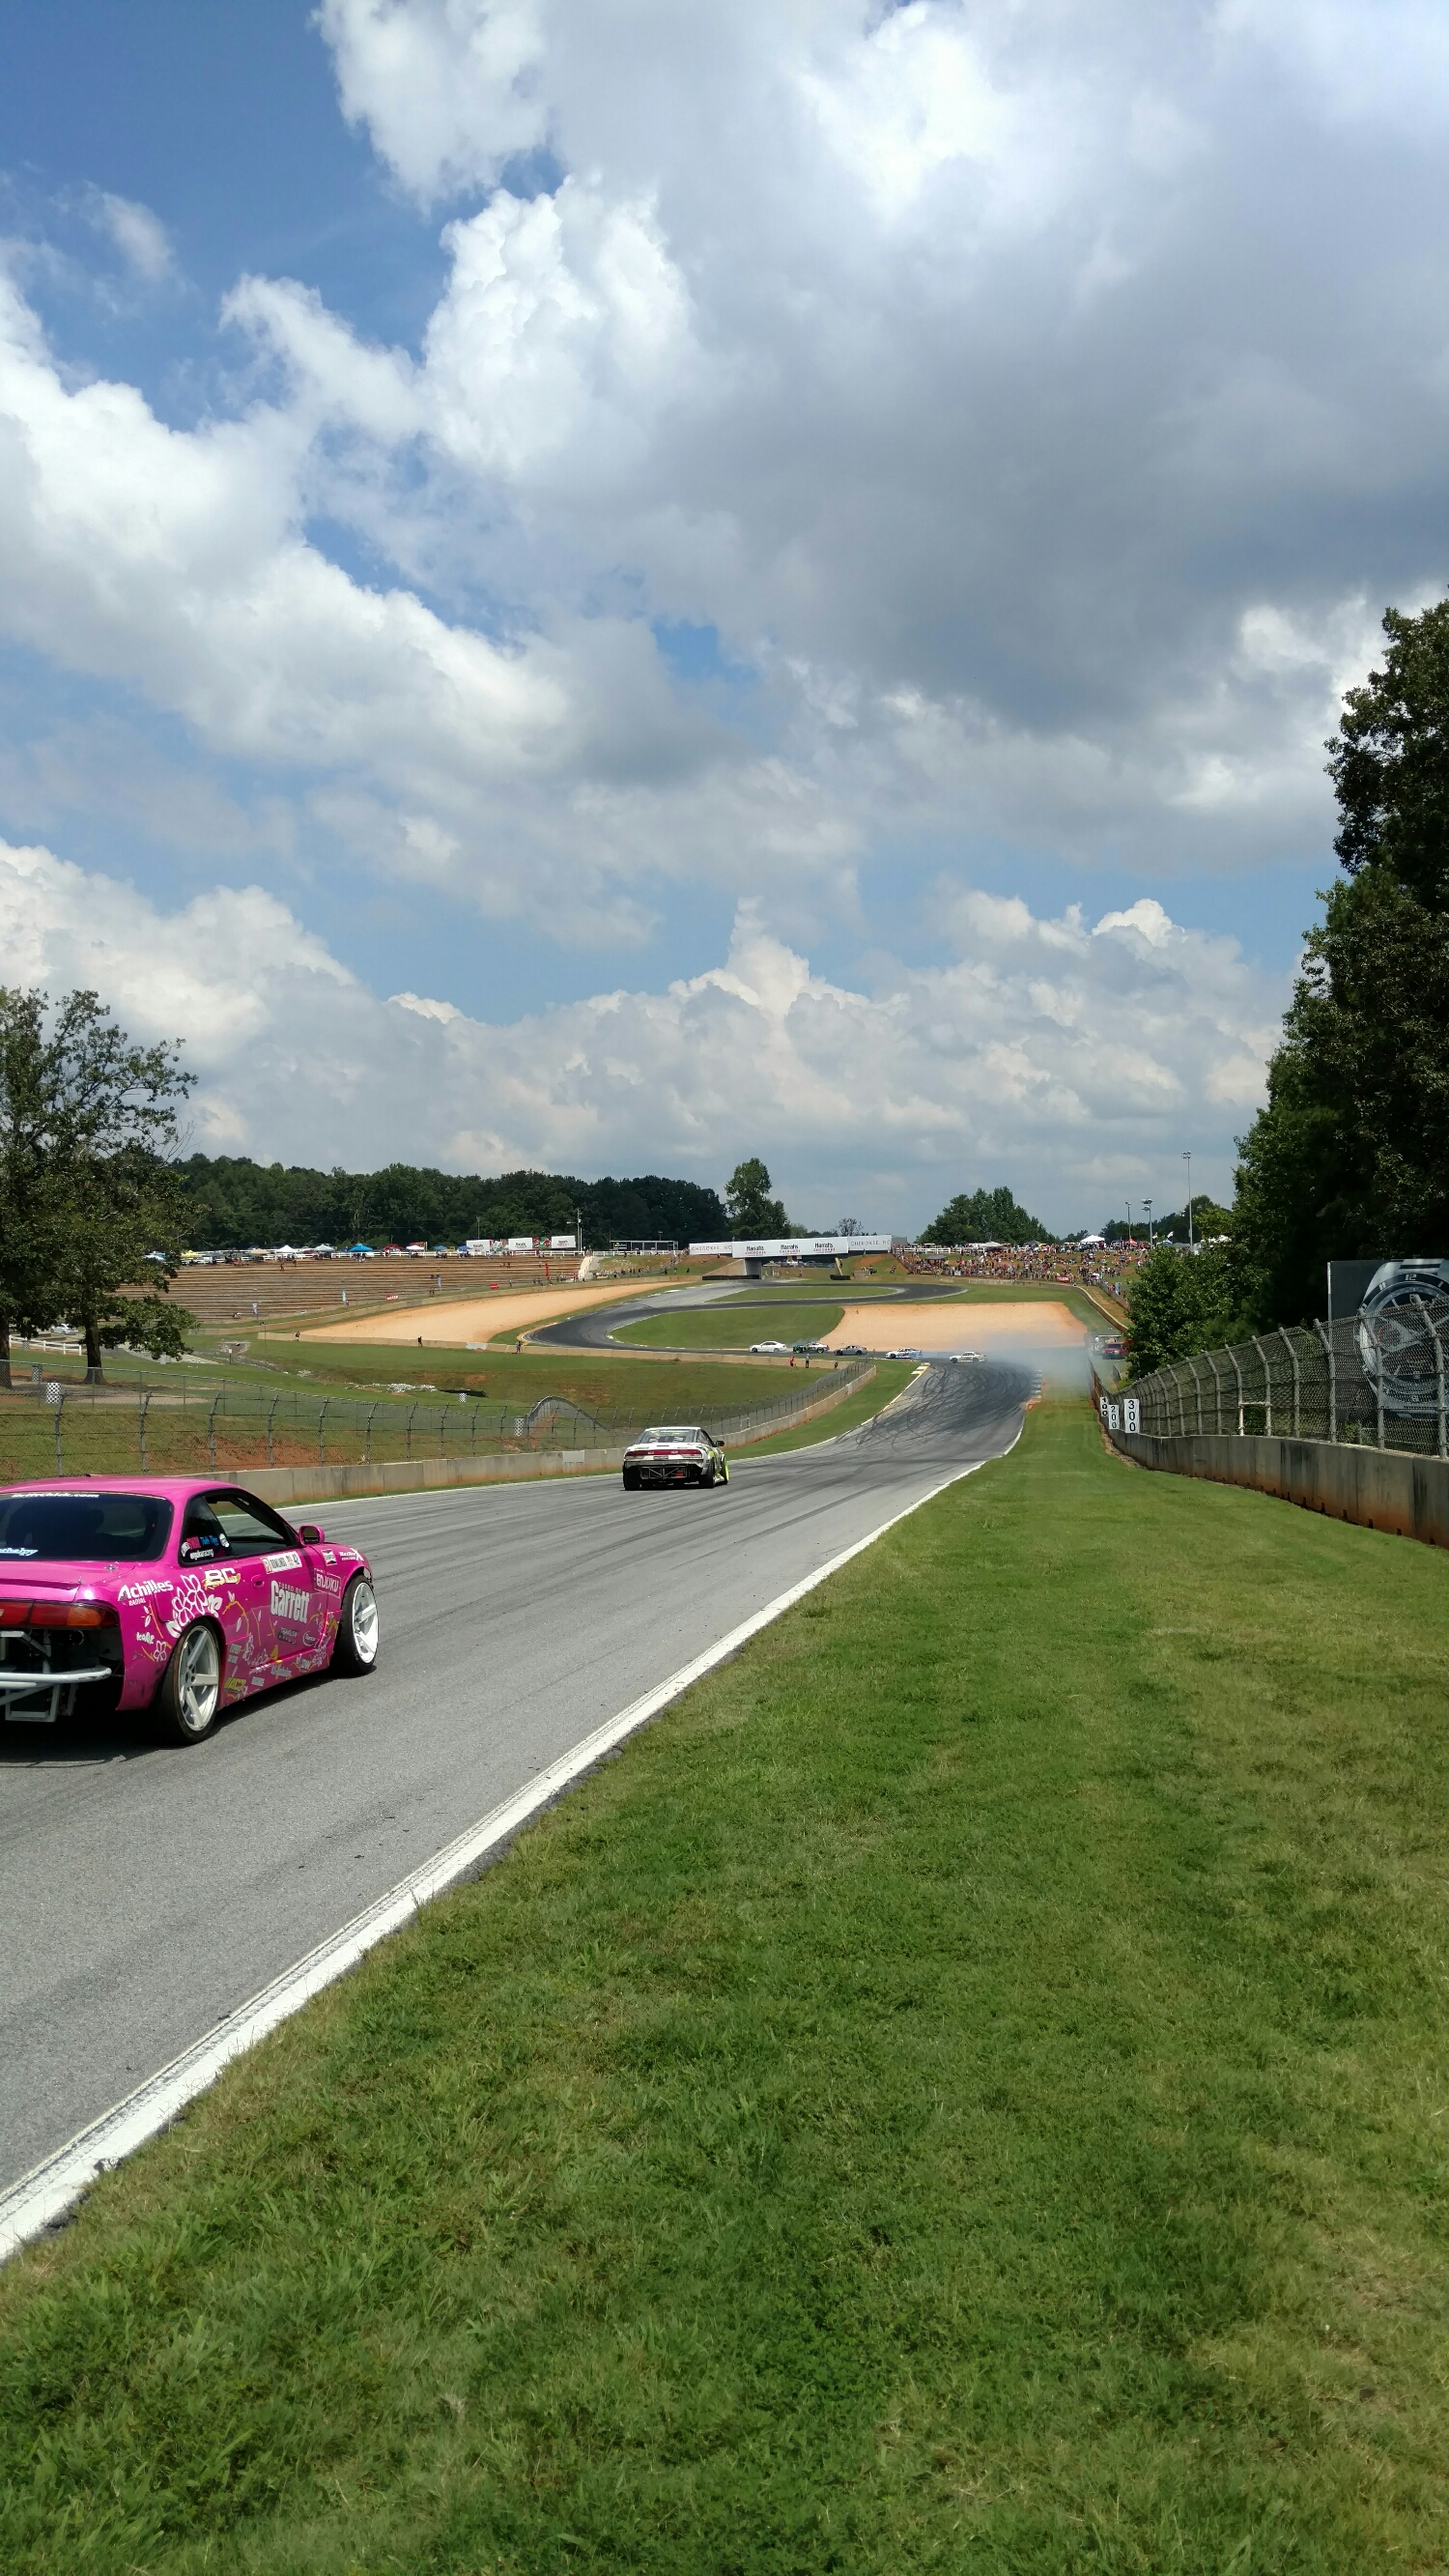 """drift """"grid"""" was in the long straight. We'd release cars from there. We'd also take super lame photos."""